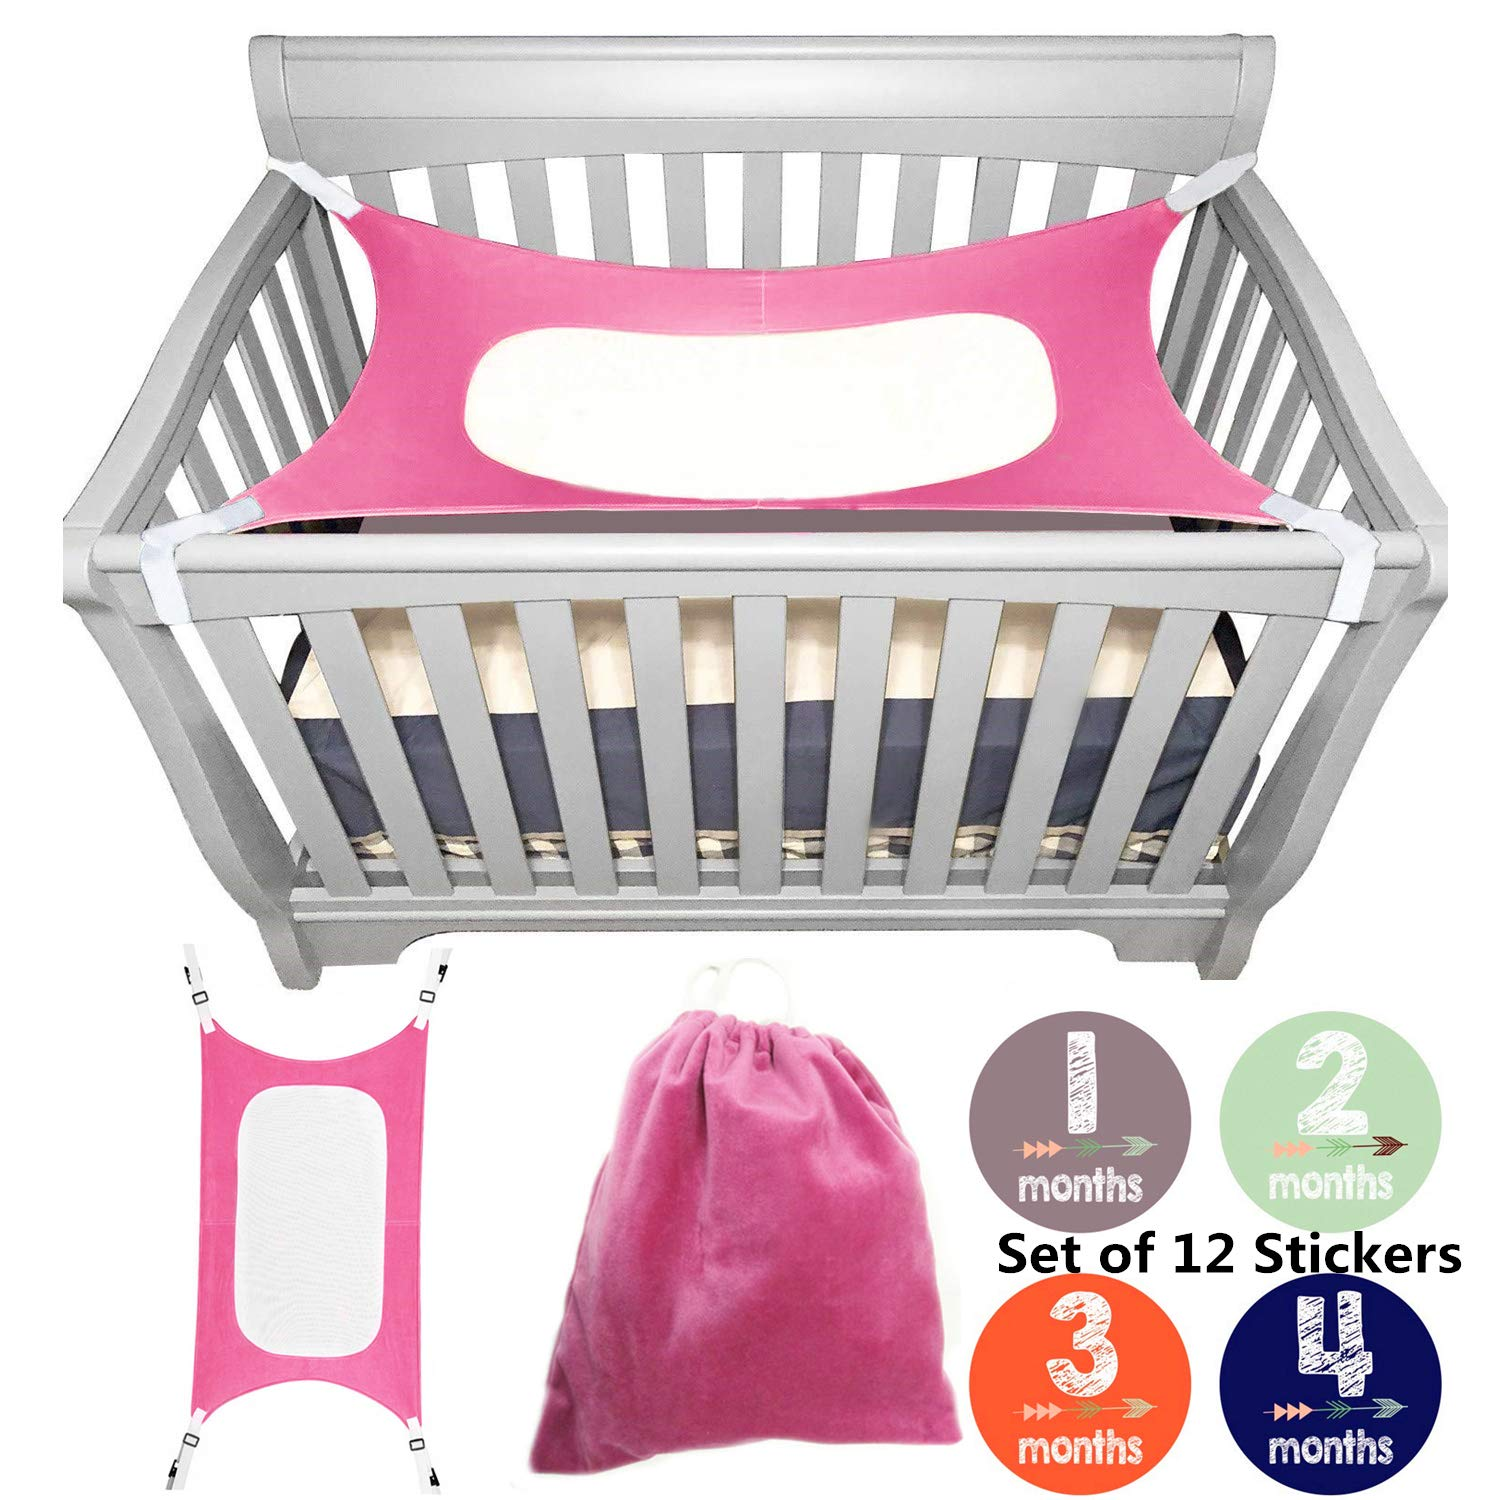 bopopo Baby Hammock for Crib - Mimics Mother's Womb - Infant Hammock 3-Layer Breathable Supportive Mesh Metal Buckle Rosered